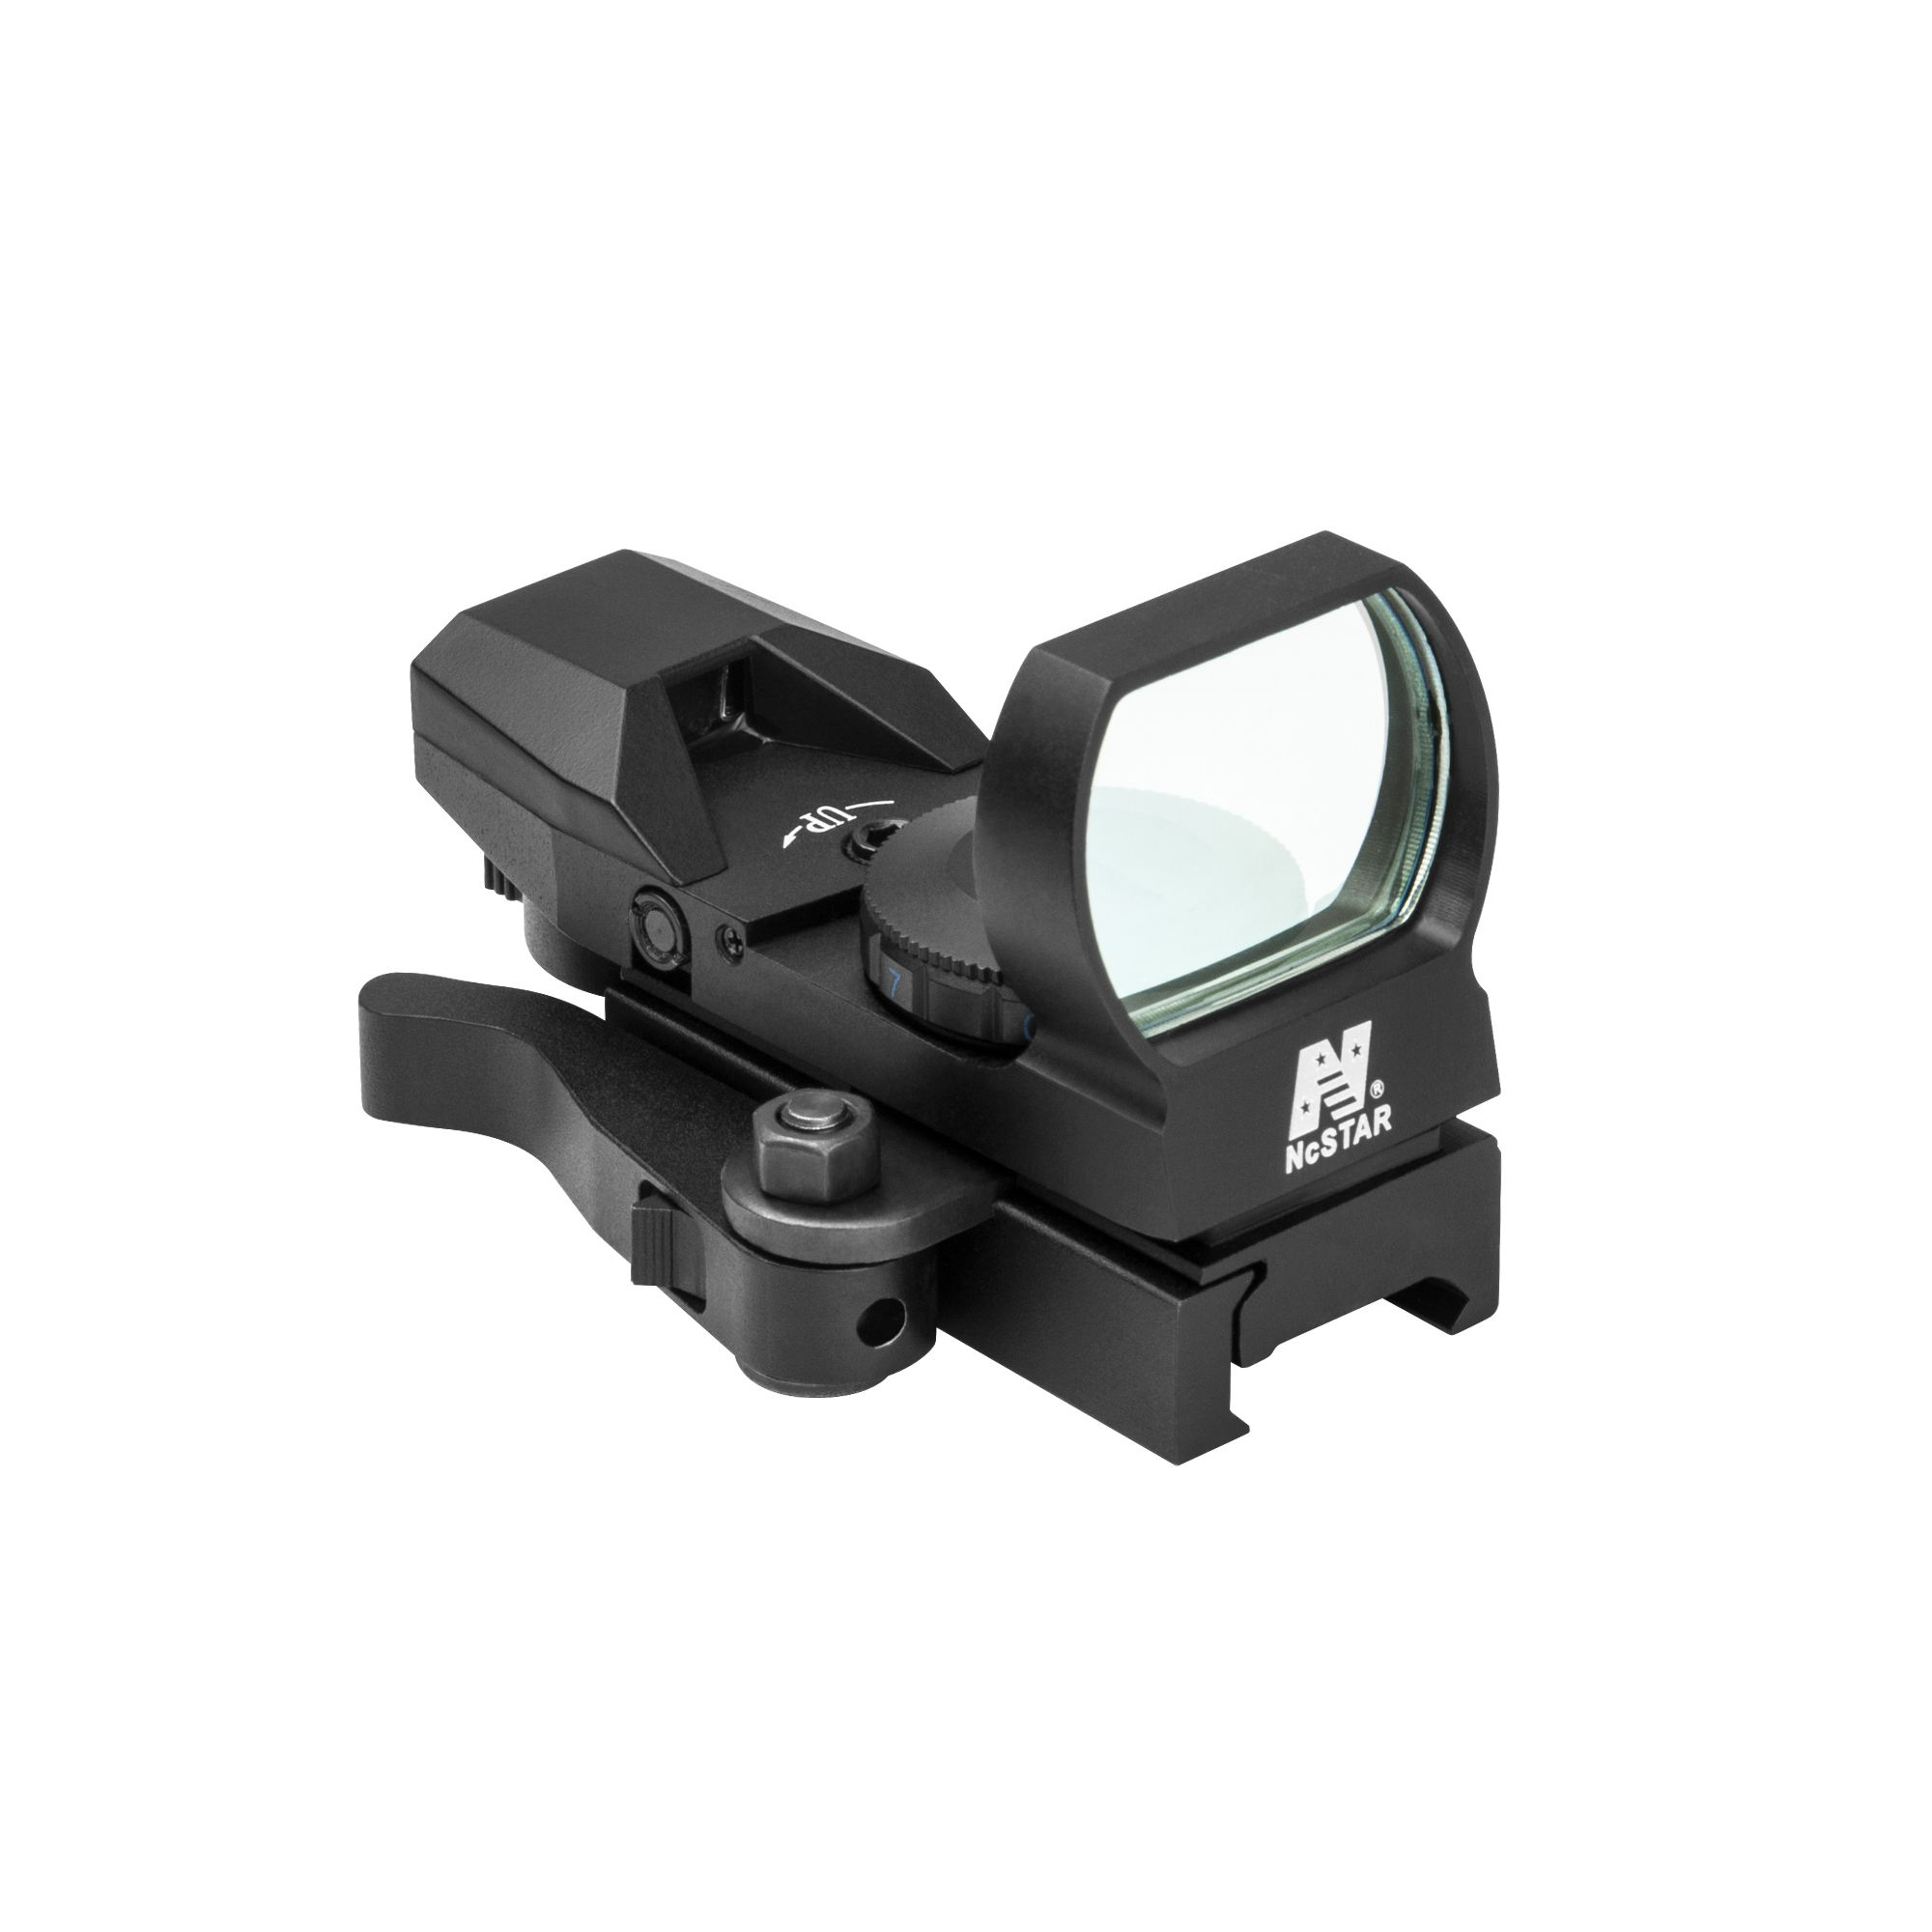 NcStar Rogue Reflex St/blue Reticles/qr Mnt/blk